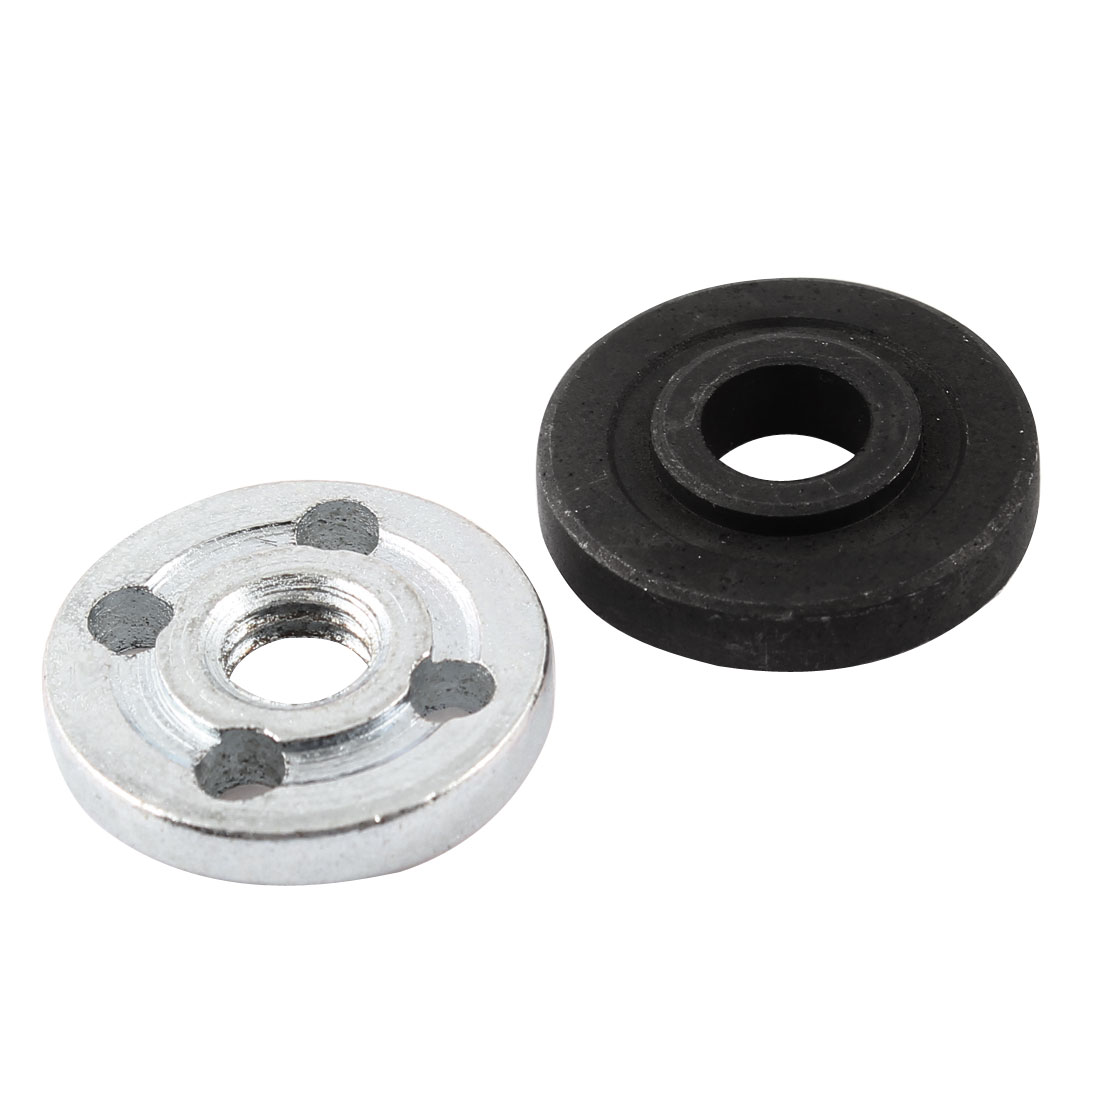 2Pcs Metal Angle Grinder Spare Part Round Clamp Inner Outer Flange Fixing Fitting Set Black Silver Tone for Hitachi 100